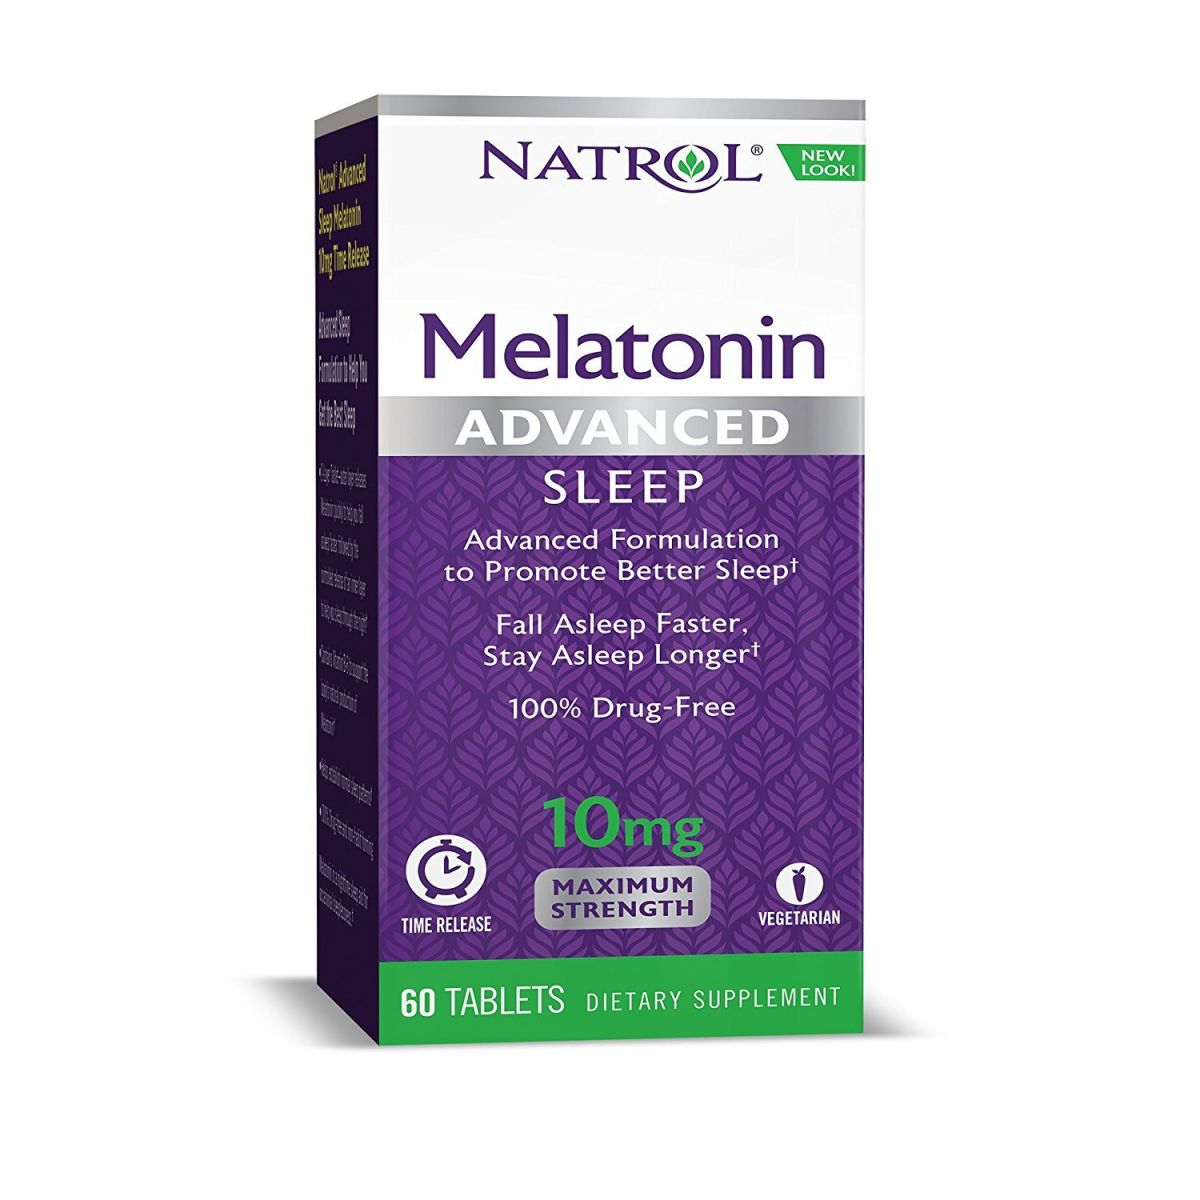 natrol-melatonin-sleep